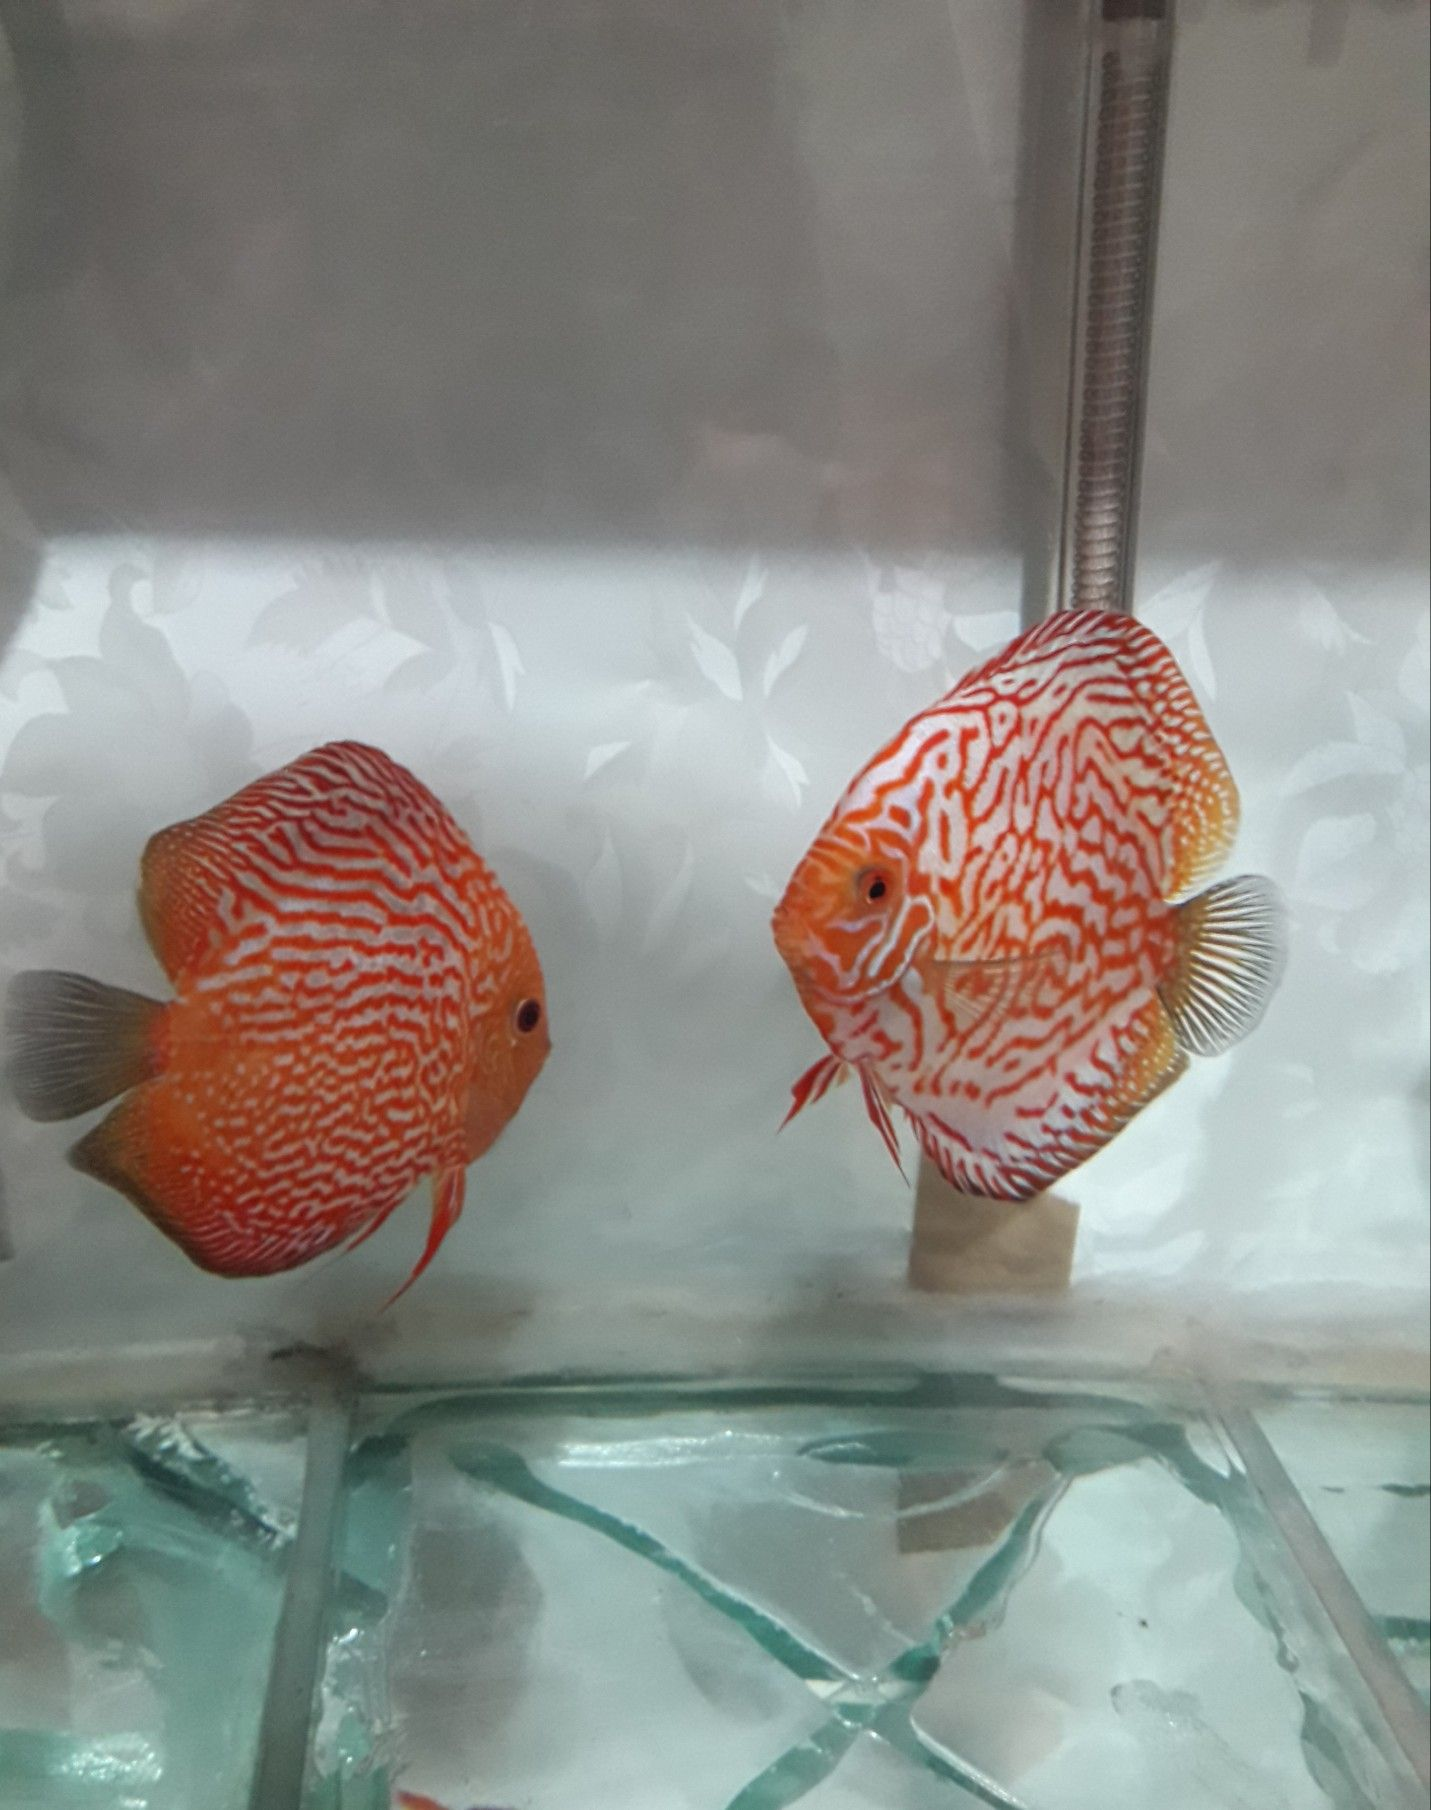 Pin By Jacqueline Hart On دیسکس Tropical Fish Discus Fish Fish Pet